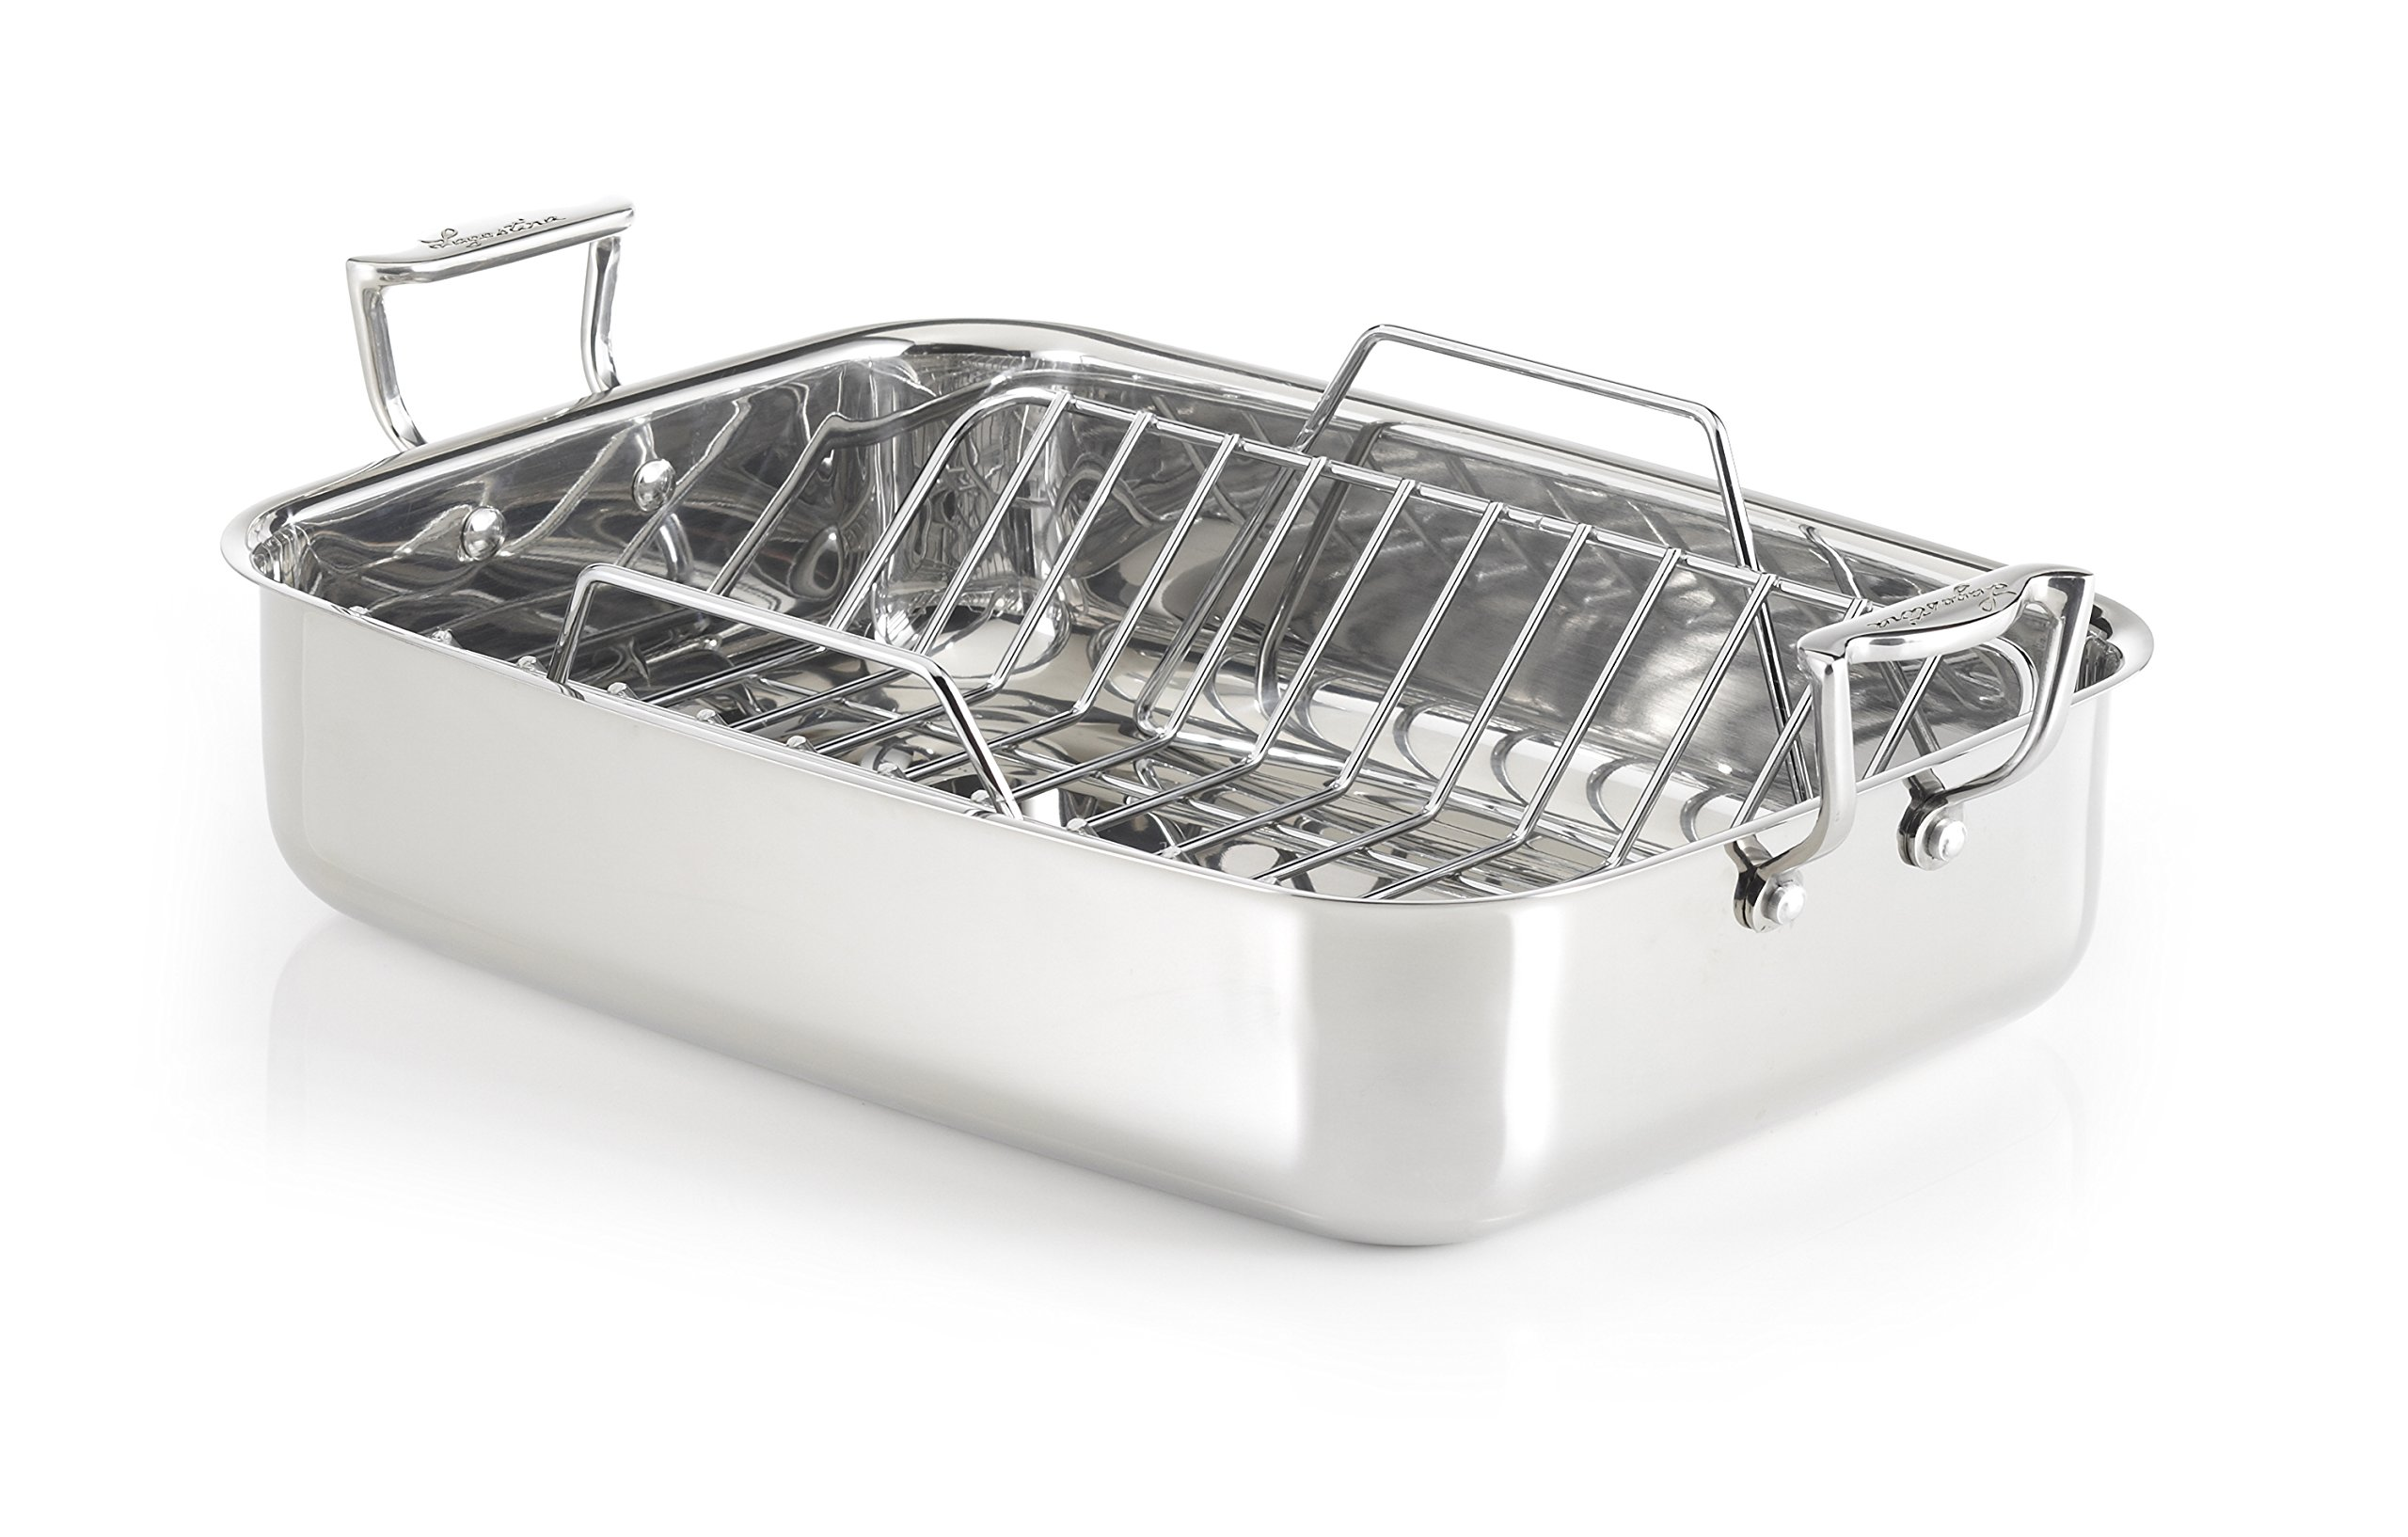 Lagostina T9910164 Stainless Steel 16-Inch Rectangular Roasting Pan Chicken Roaster with Rack Cookware, Silver by Lagostina